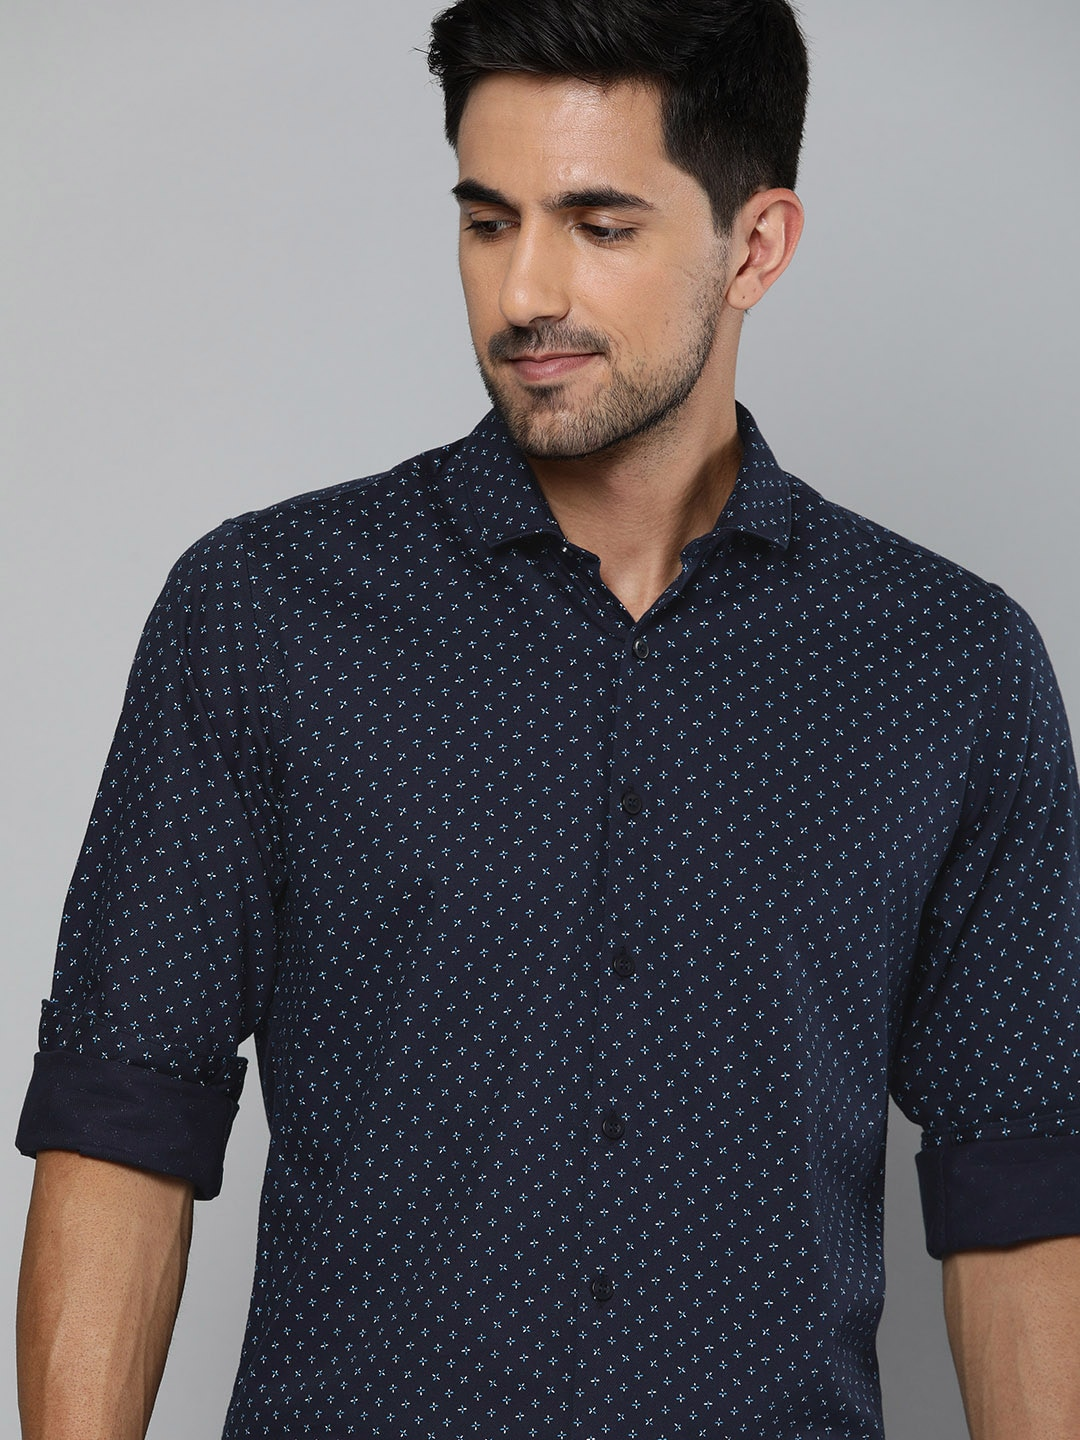 Mast  Harbour Men Navy Blue  White Regular Fit Printed Casual Shirt-12934538